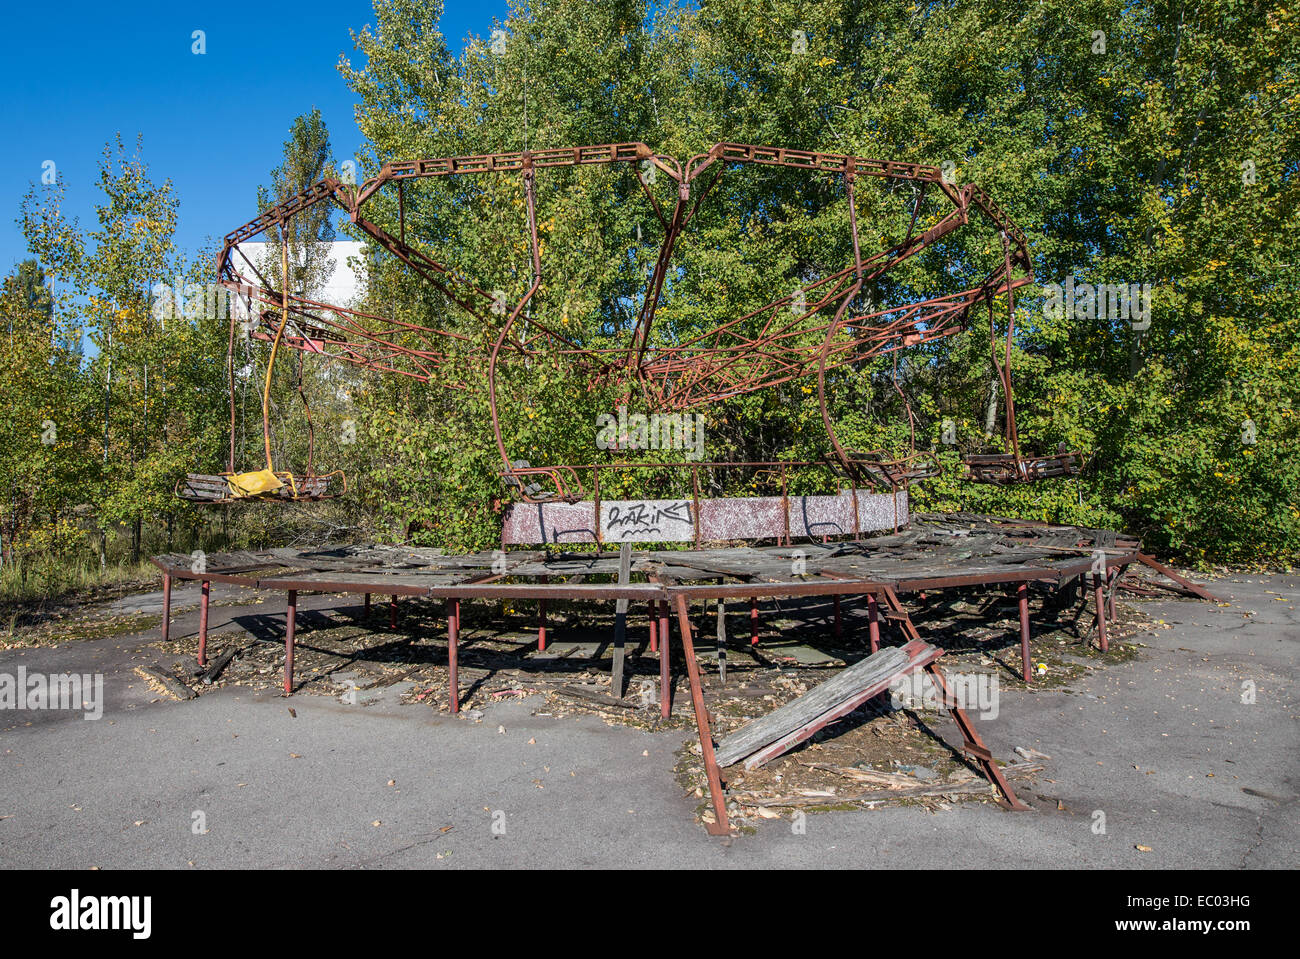 carousel in funfair in city park of Pripyat abandoned city, Chernobyl Exclusion Zone, Ukraine Stock Photo